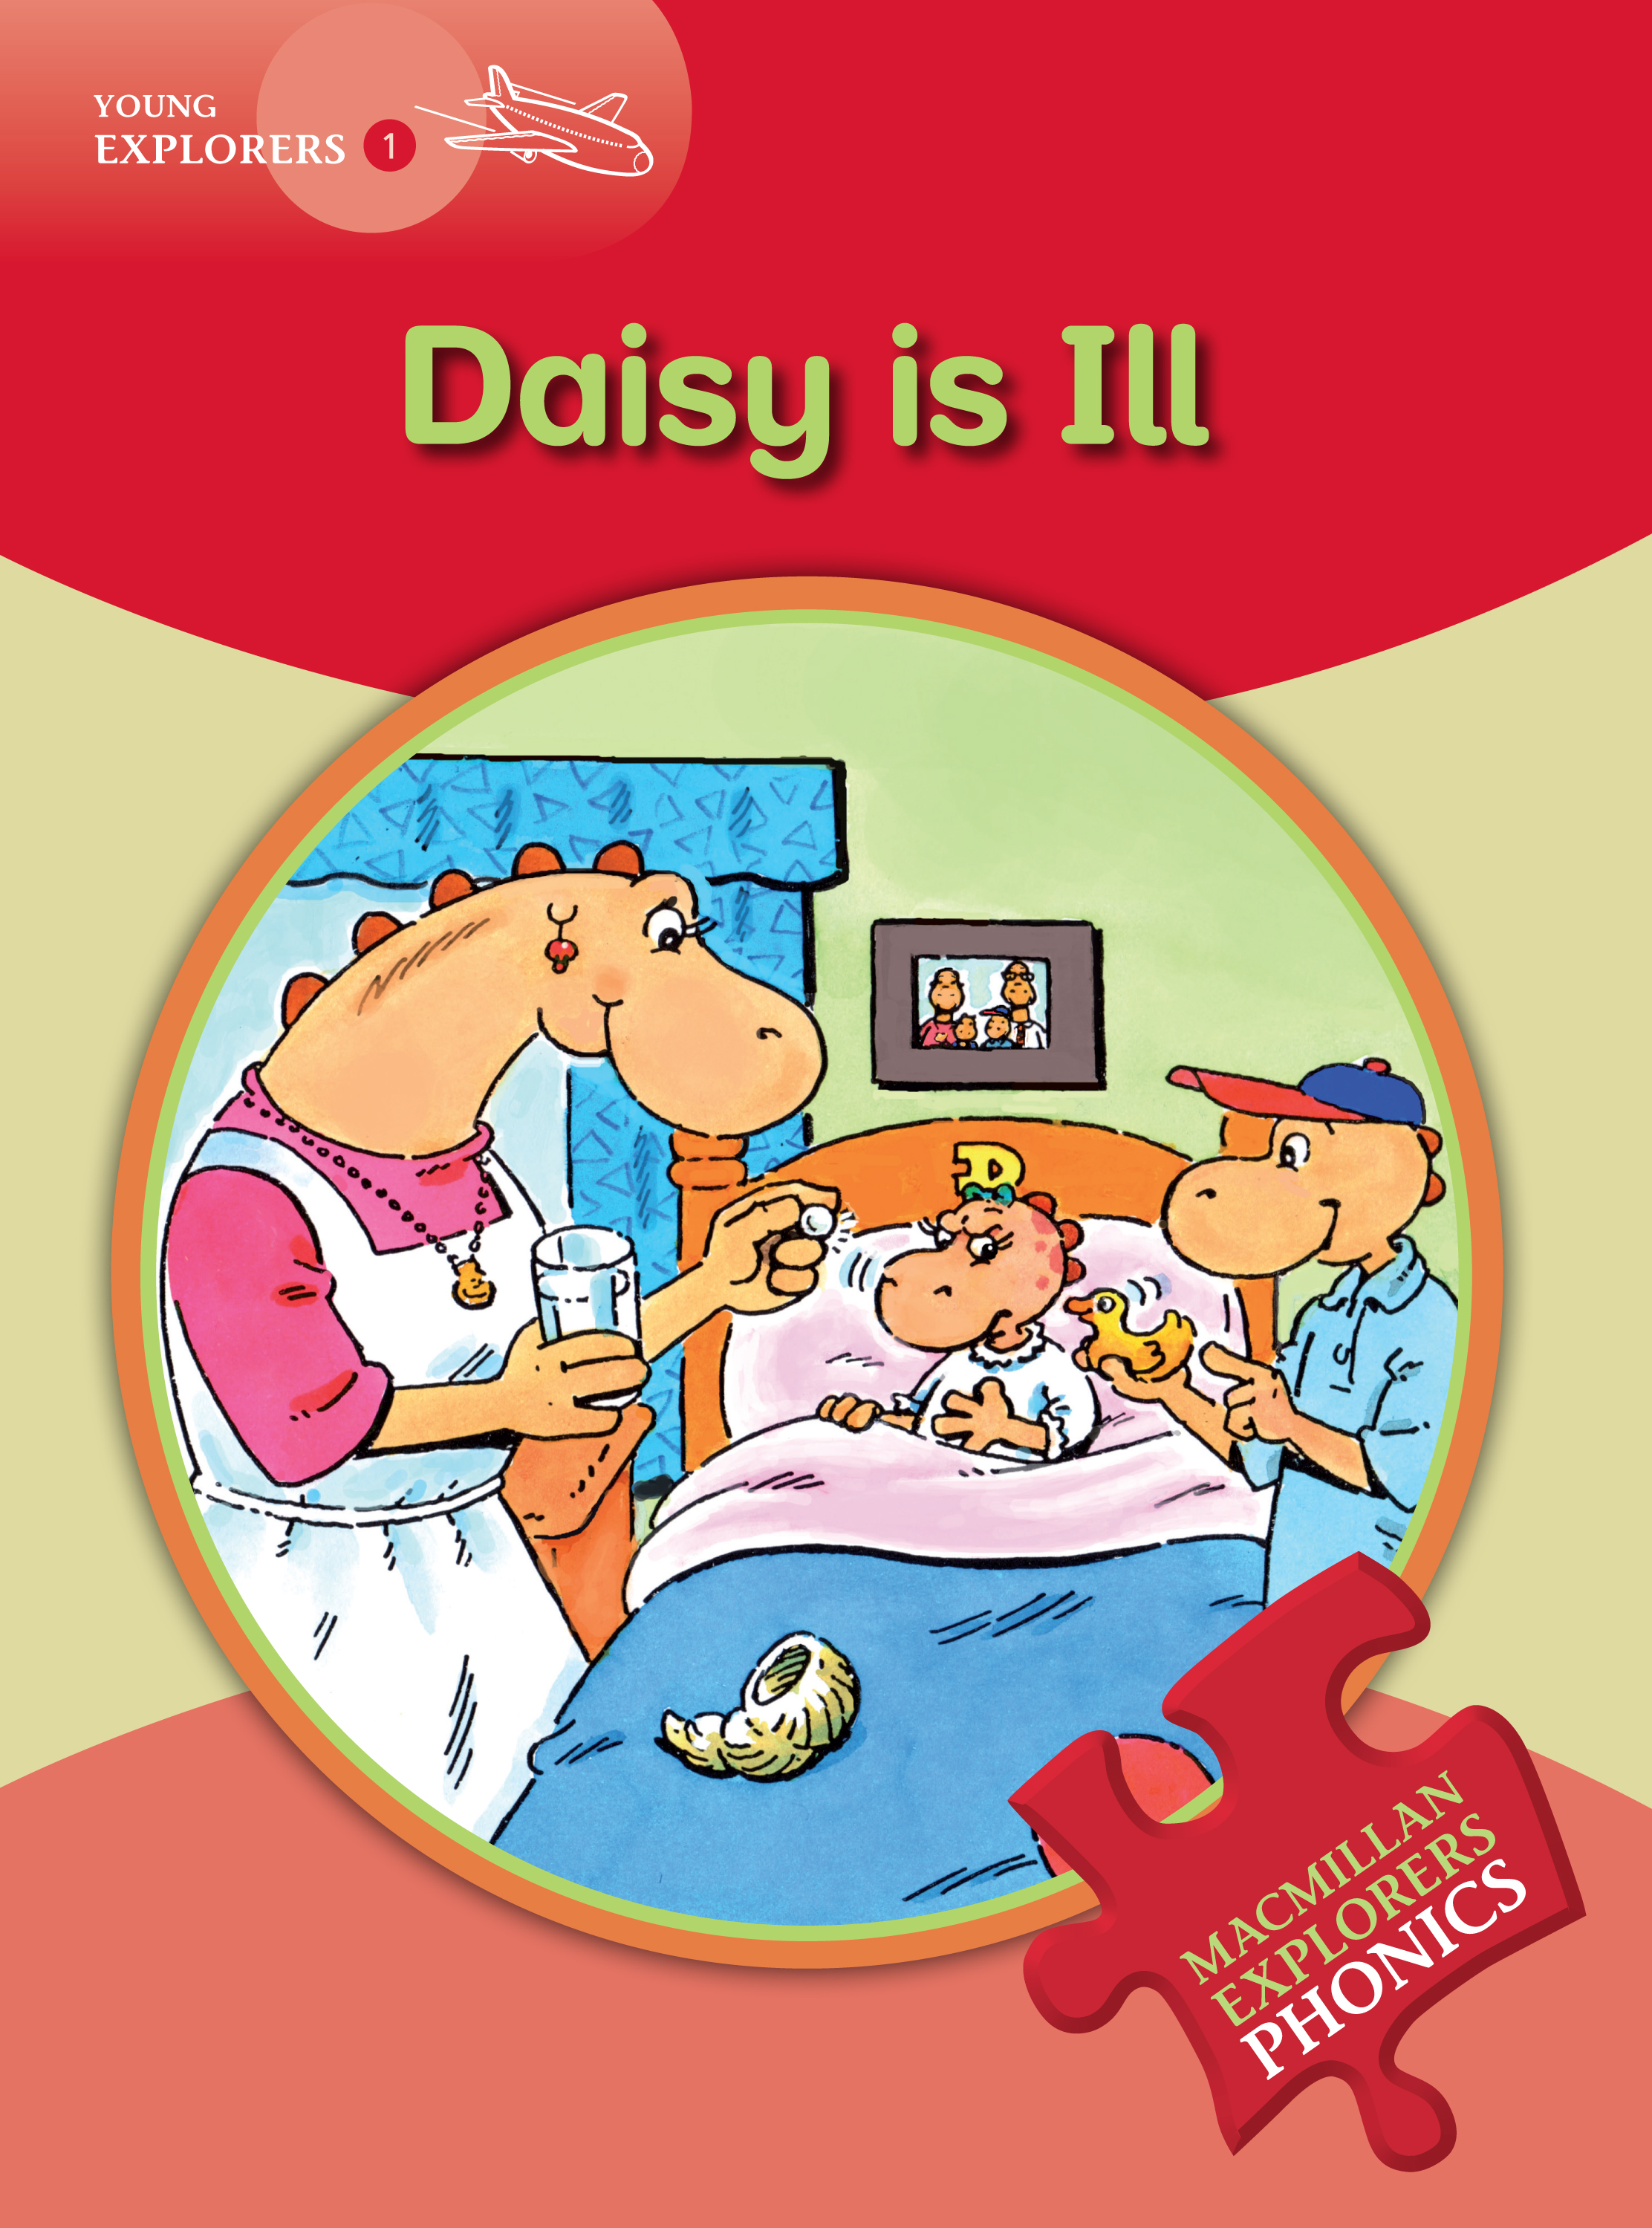 Young Explorers 1: Daisy is Ill